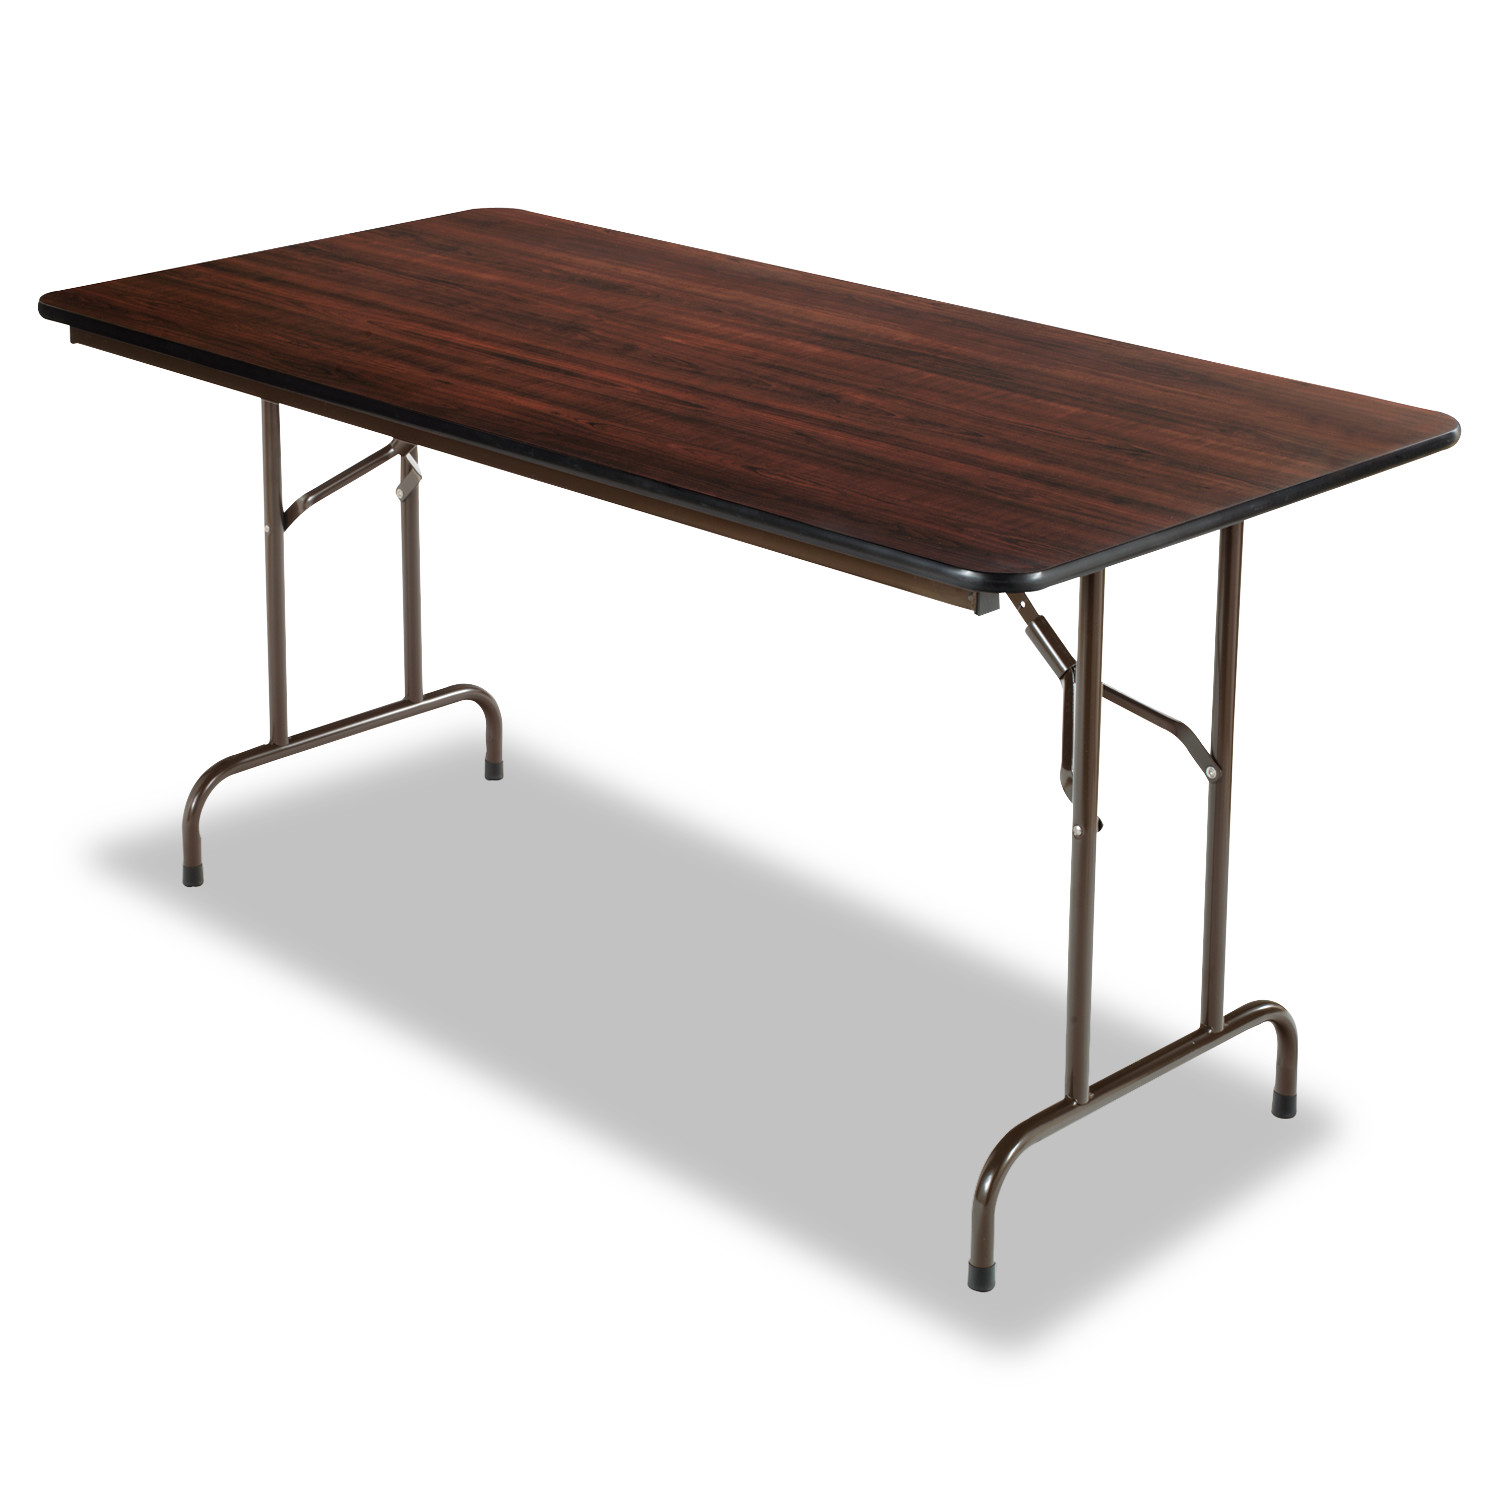 Alera Wood Folding Table, Rectangular, 60w x 29 3/4d x 29h, Walnut